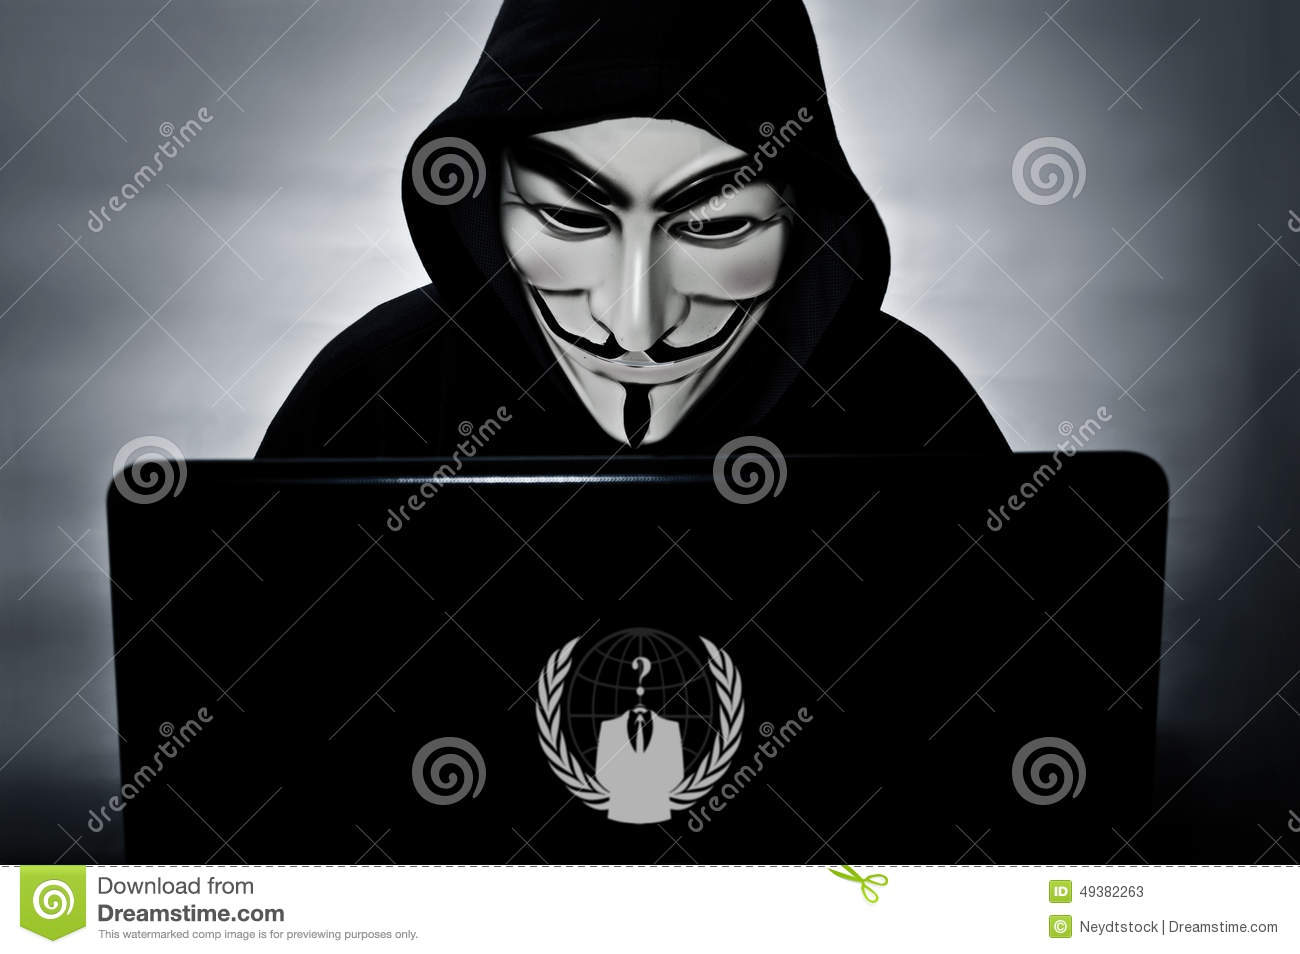 Vendetta Mask Stock Photos Download 508 Royalty Free Photos